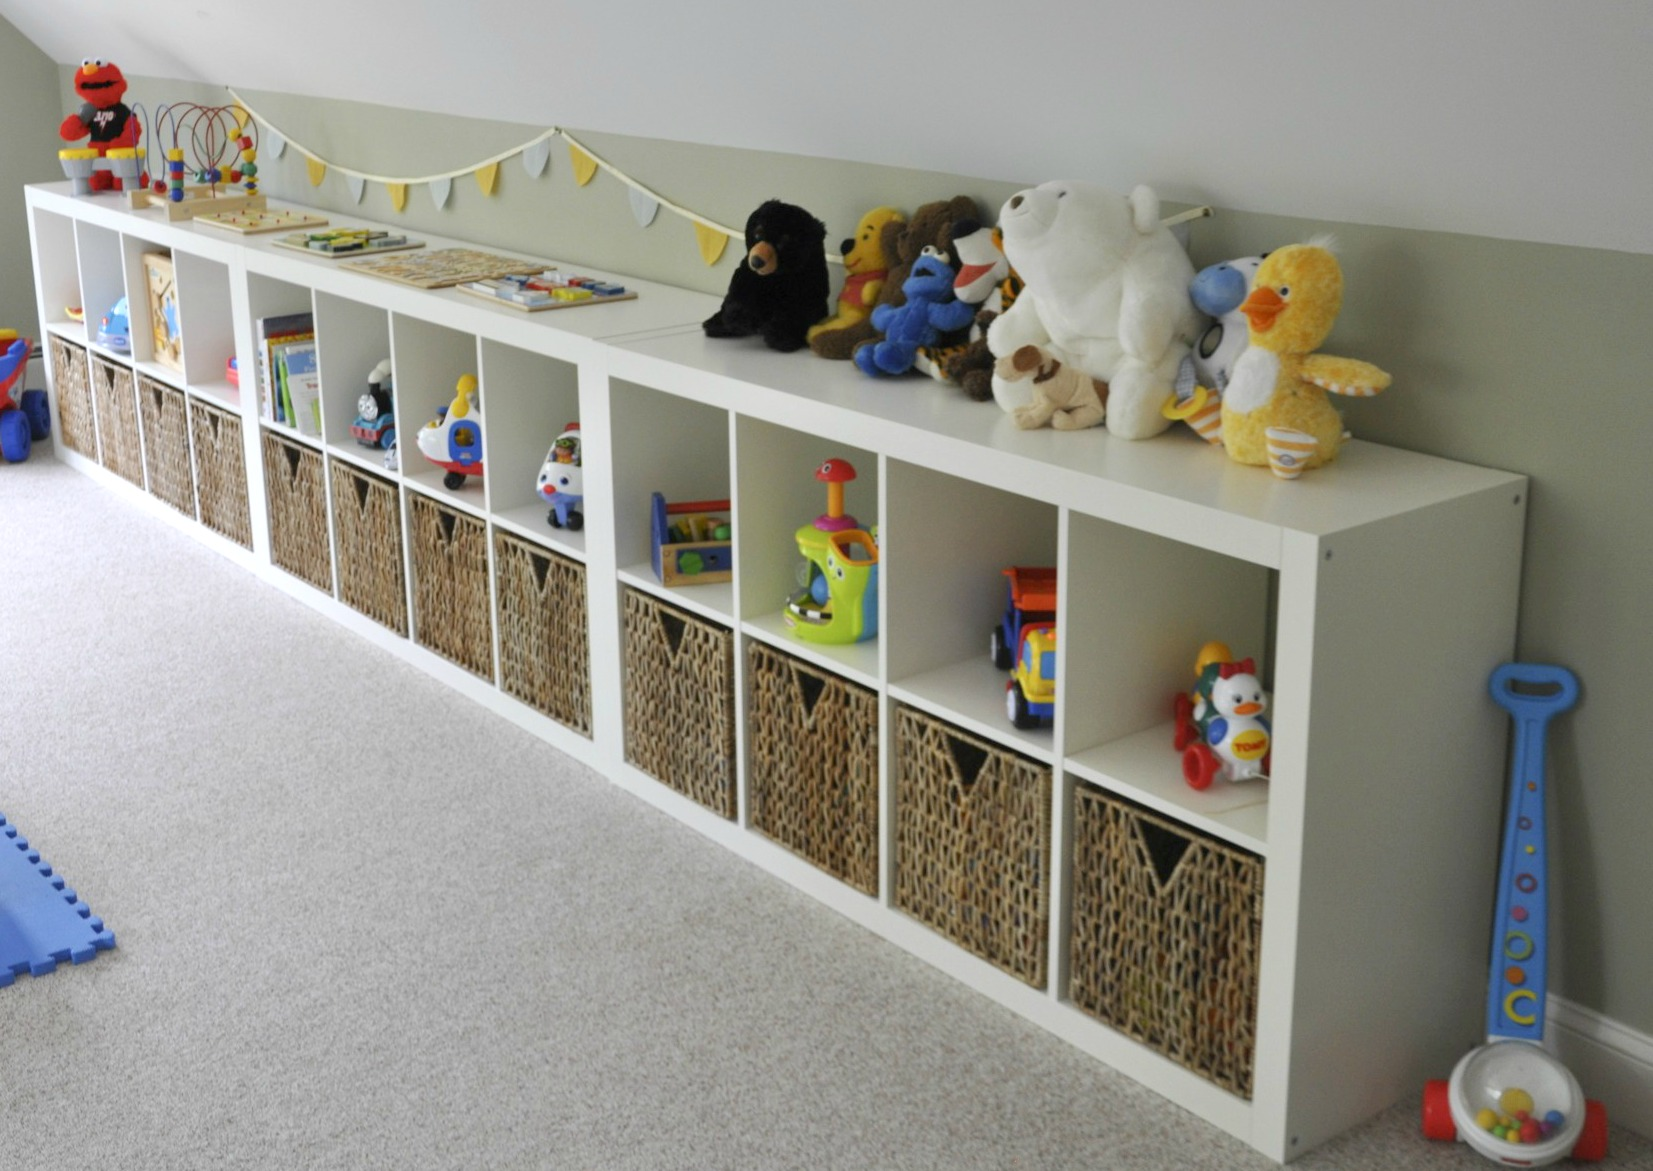 Ikea expedit playroom storage 2 sisters 2 cities for Kids room storage ideas